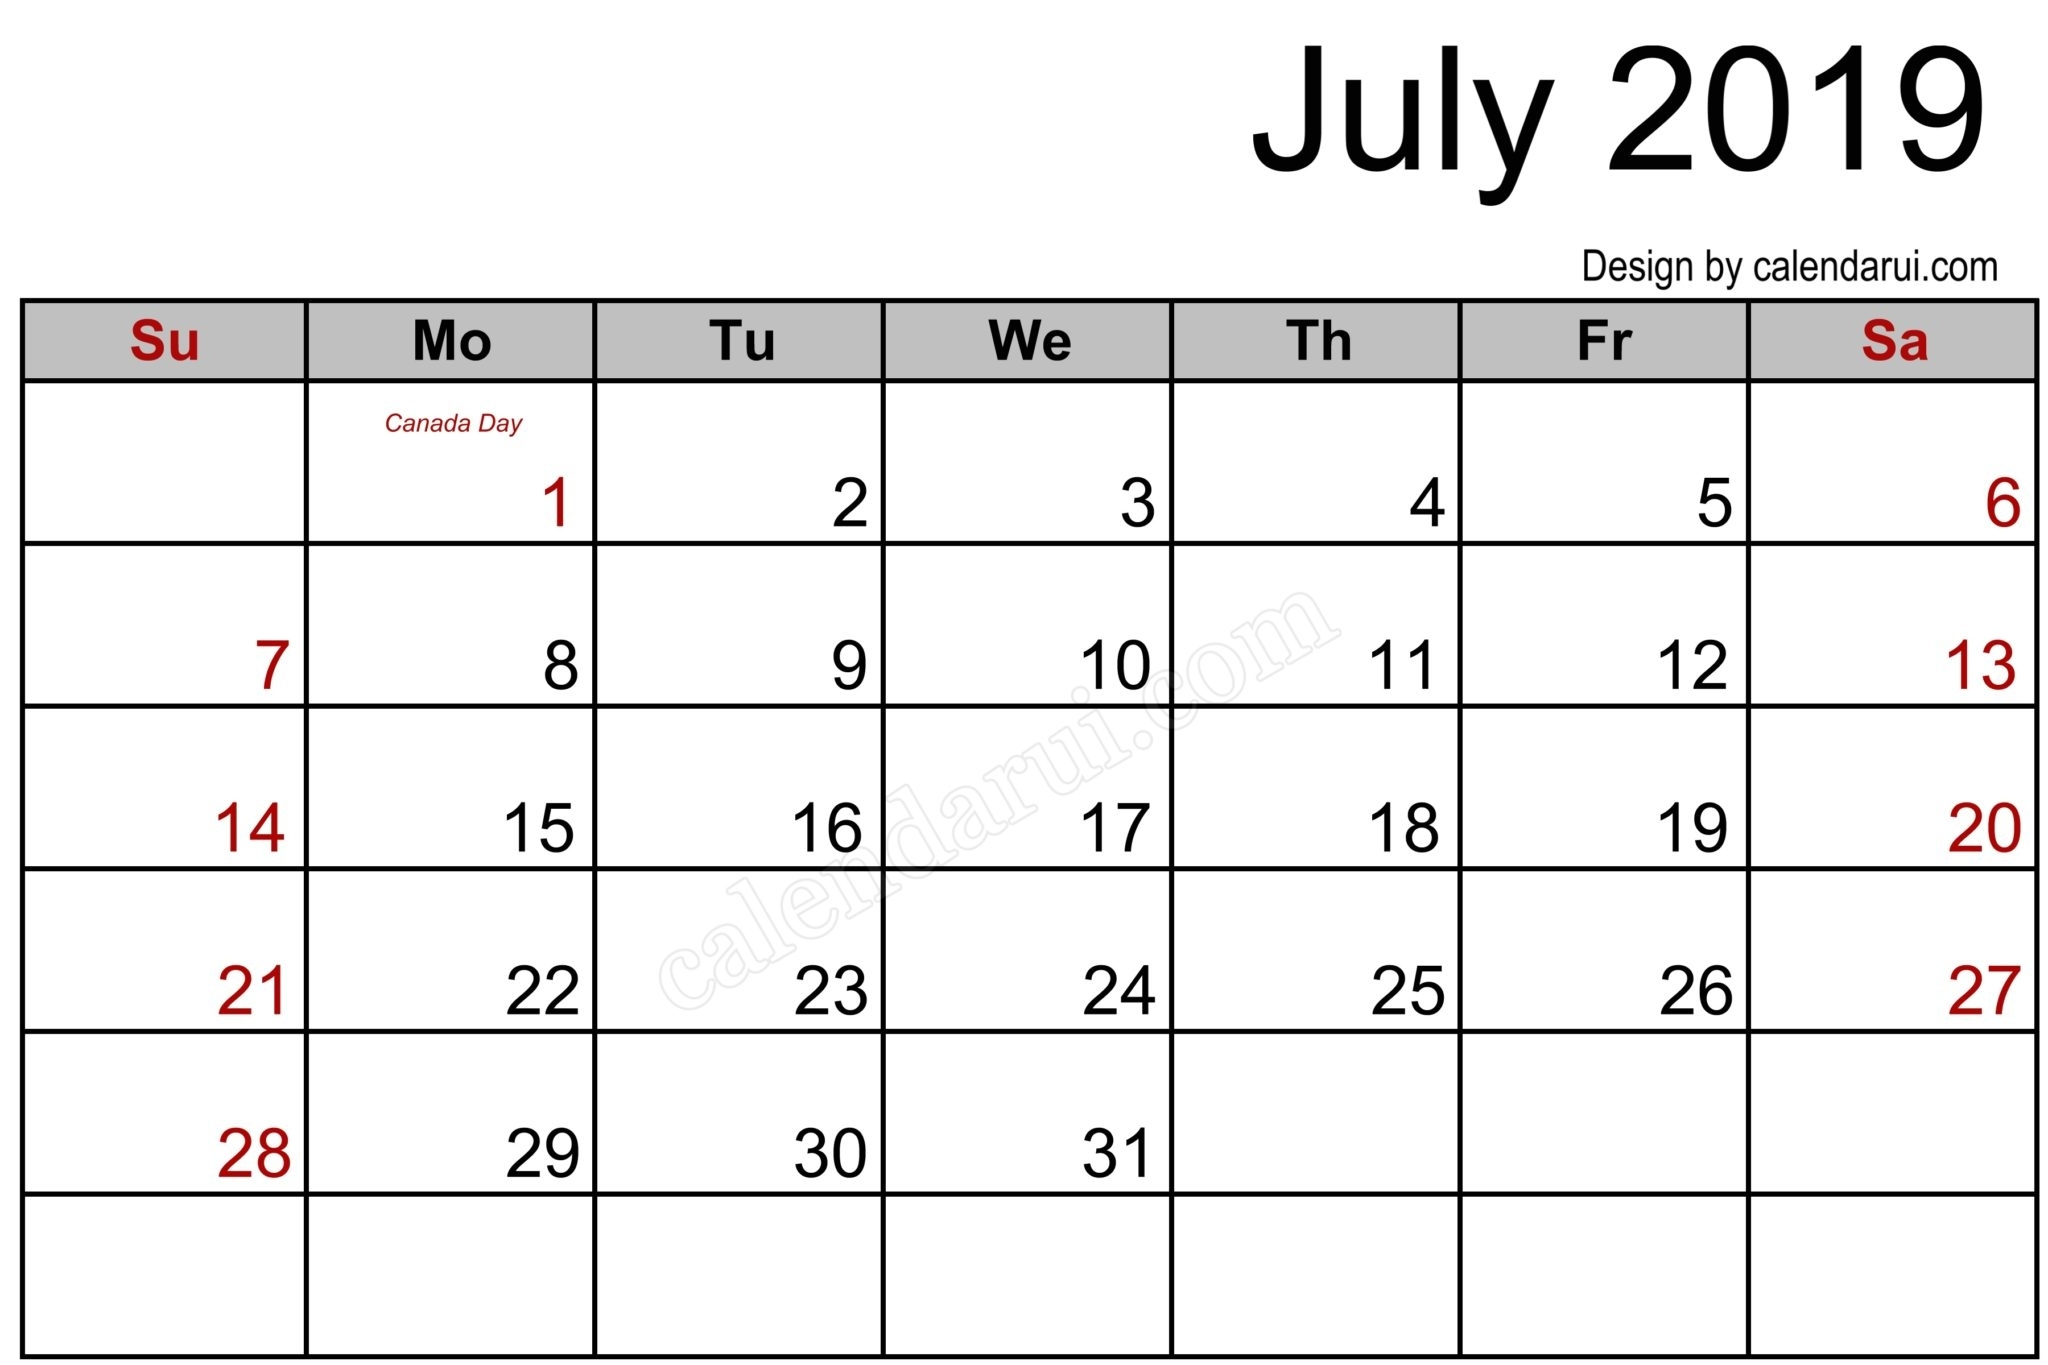 July 2019 Printable Calendar Pdf Free Monthly Template - July 2019 in Caleners From July 2019 -December 2020 Free Printable